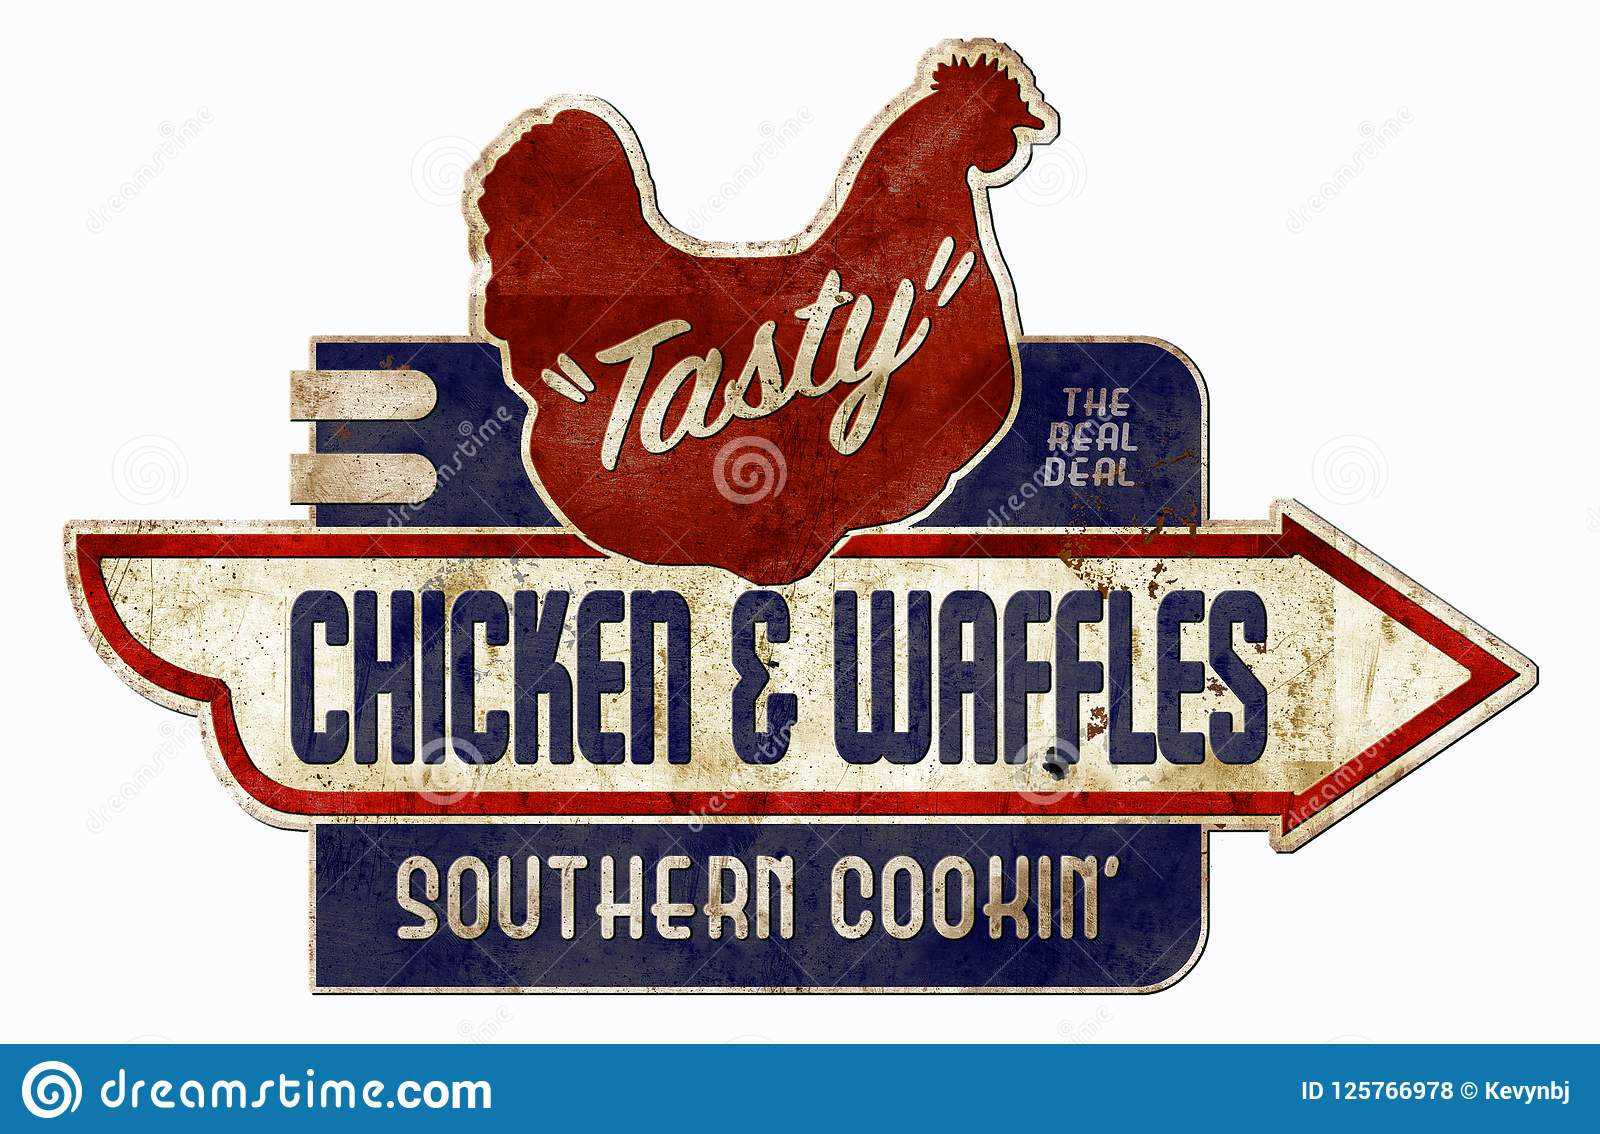 17 Best images about BBQ Signs on Pinterest   Restaurant ...   Bbq Chicken Sign